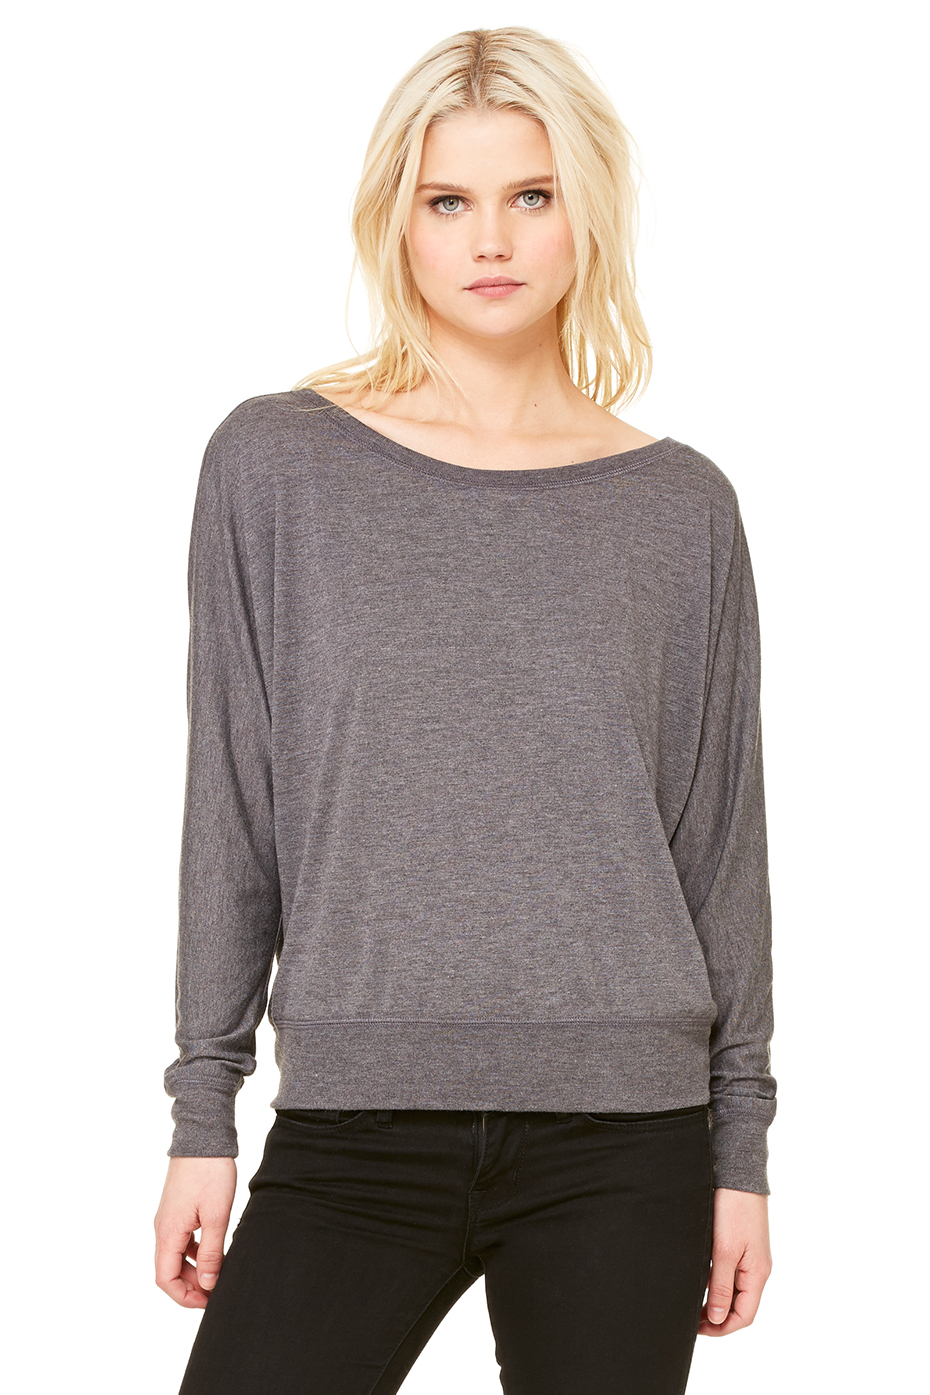 Women's Flowy Long Sleeve Off Shoulder Tee | Bella-Canvas